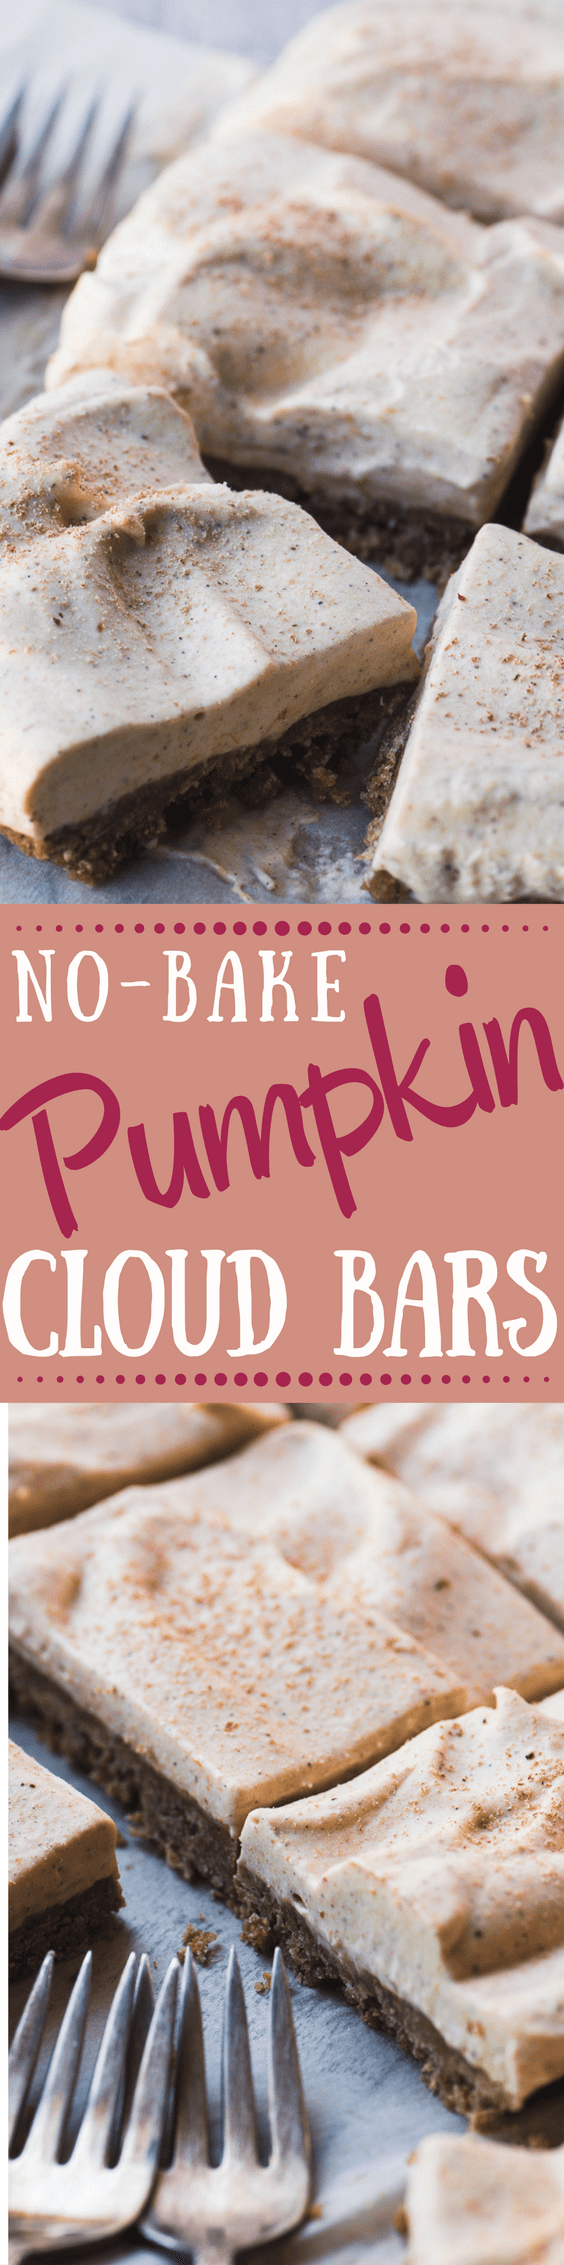 No bake pumpkin cloud bars the view from great island no bake pumpkin cloud bars this whisper light pumpkin dessert with its spiced graham crust aloadofball